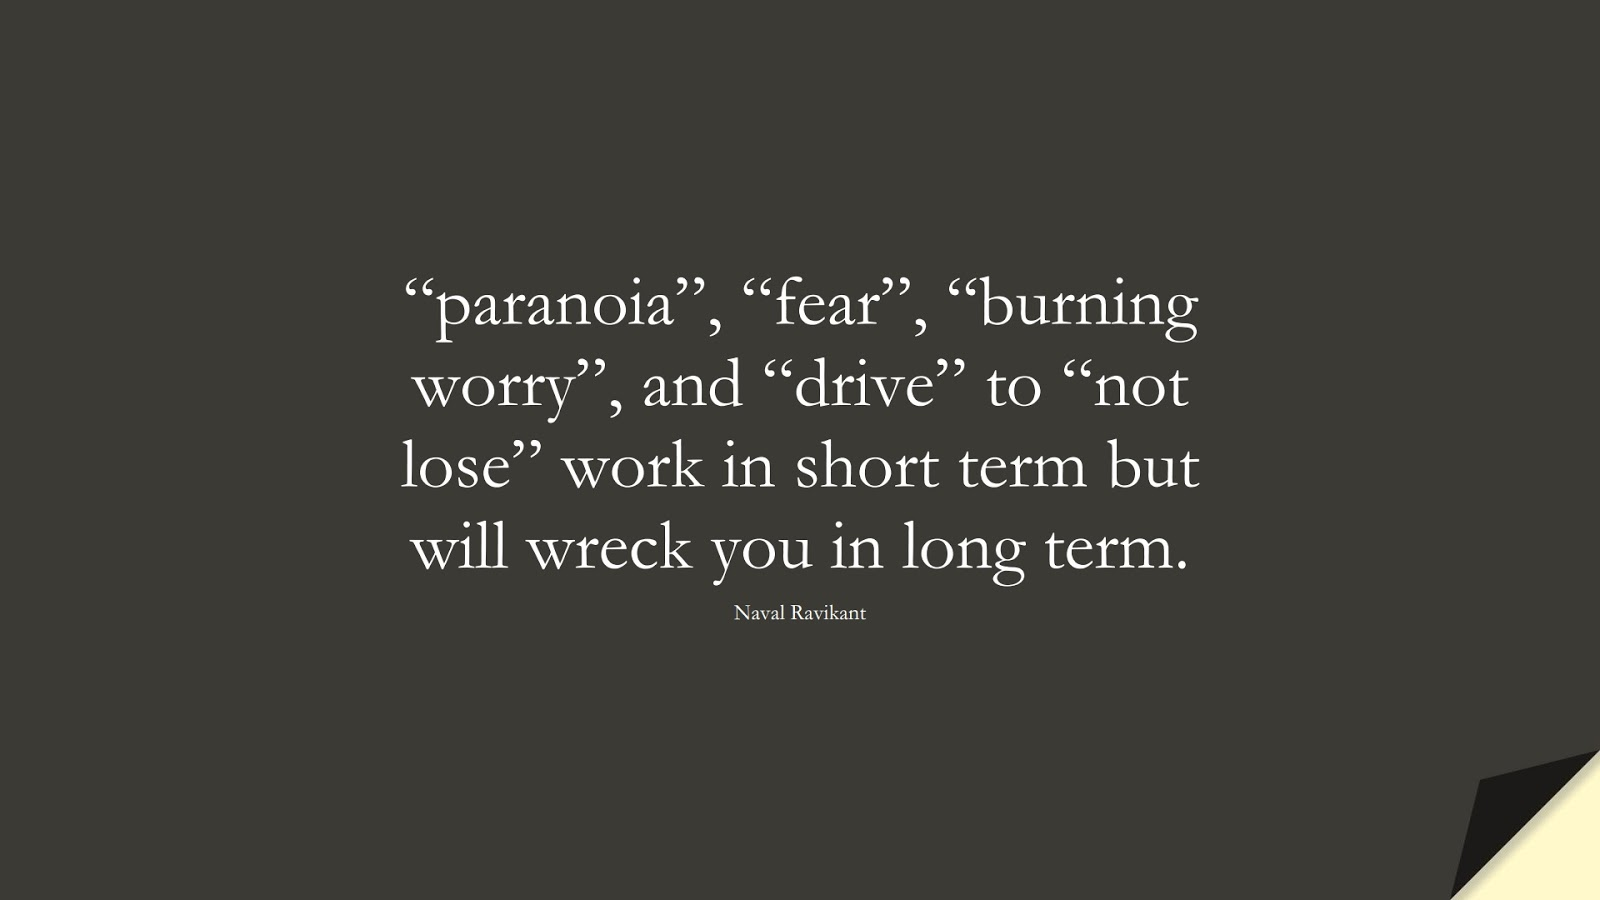 """""""paranoia"""", """"fear"""", """"burning worry"""", and """"drive"""" to """"not lose"""" work in short term but will wreck you in long term. (Naval Ravikant);  #FearQuotes"""